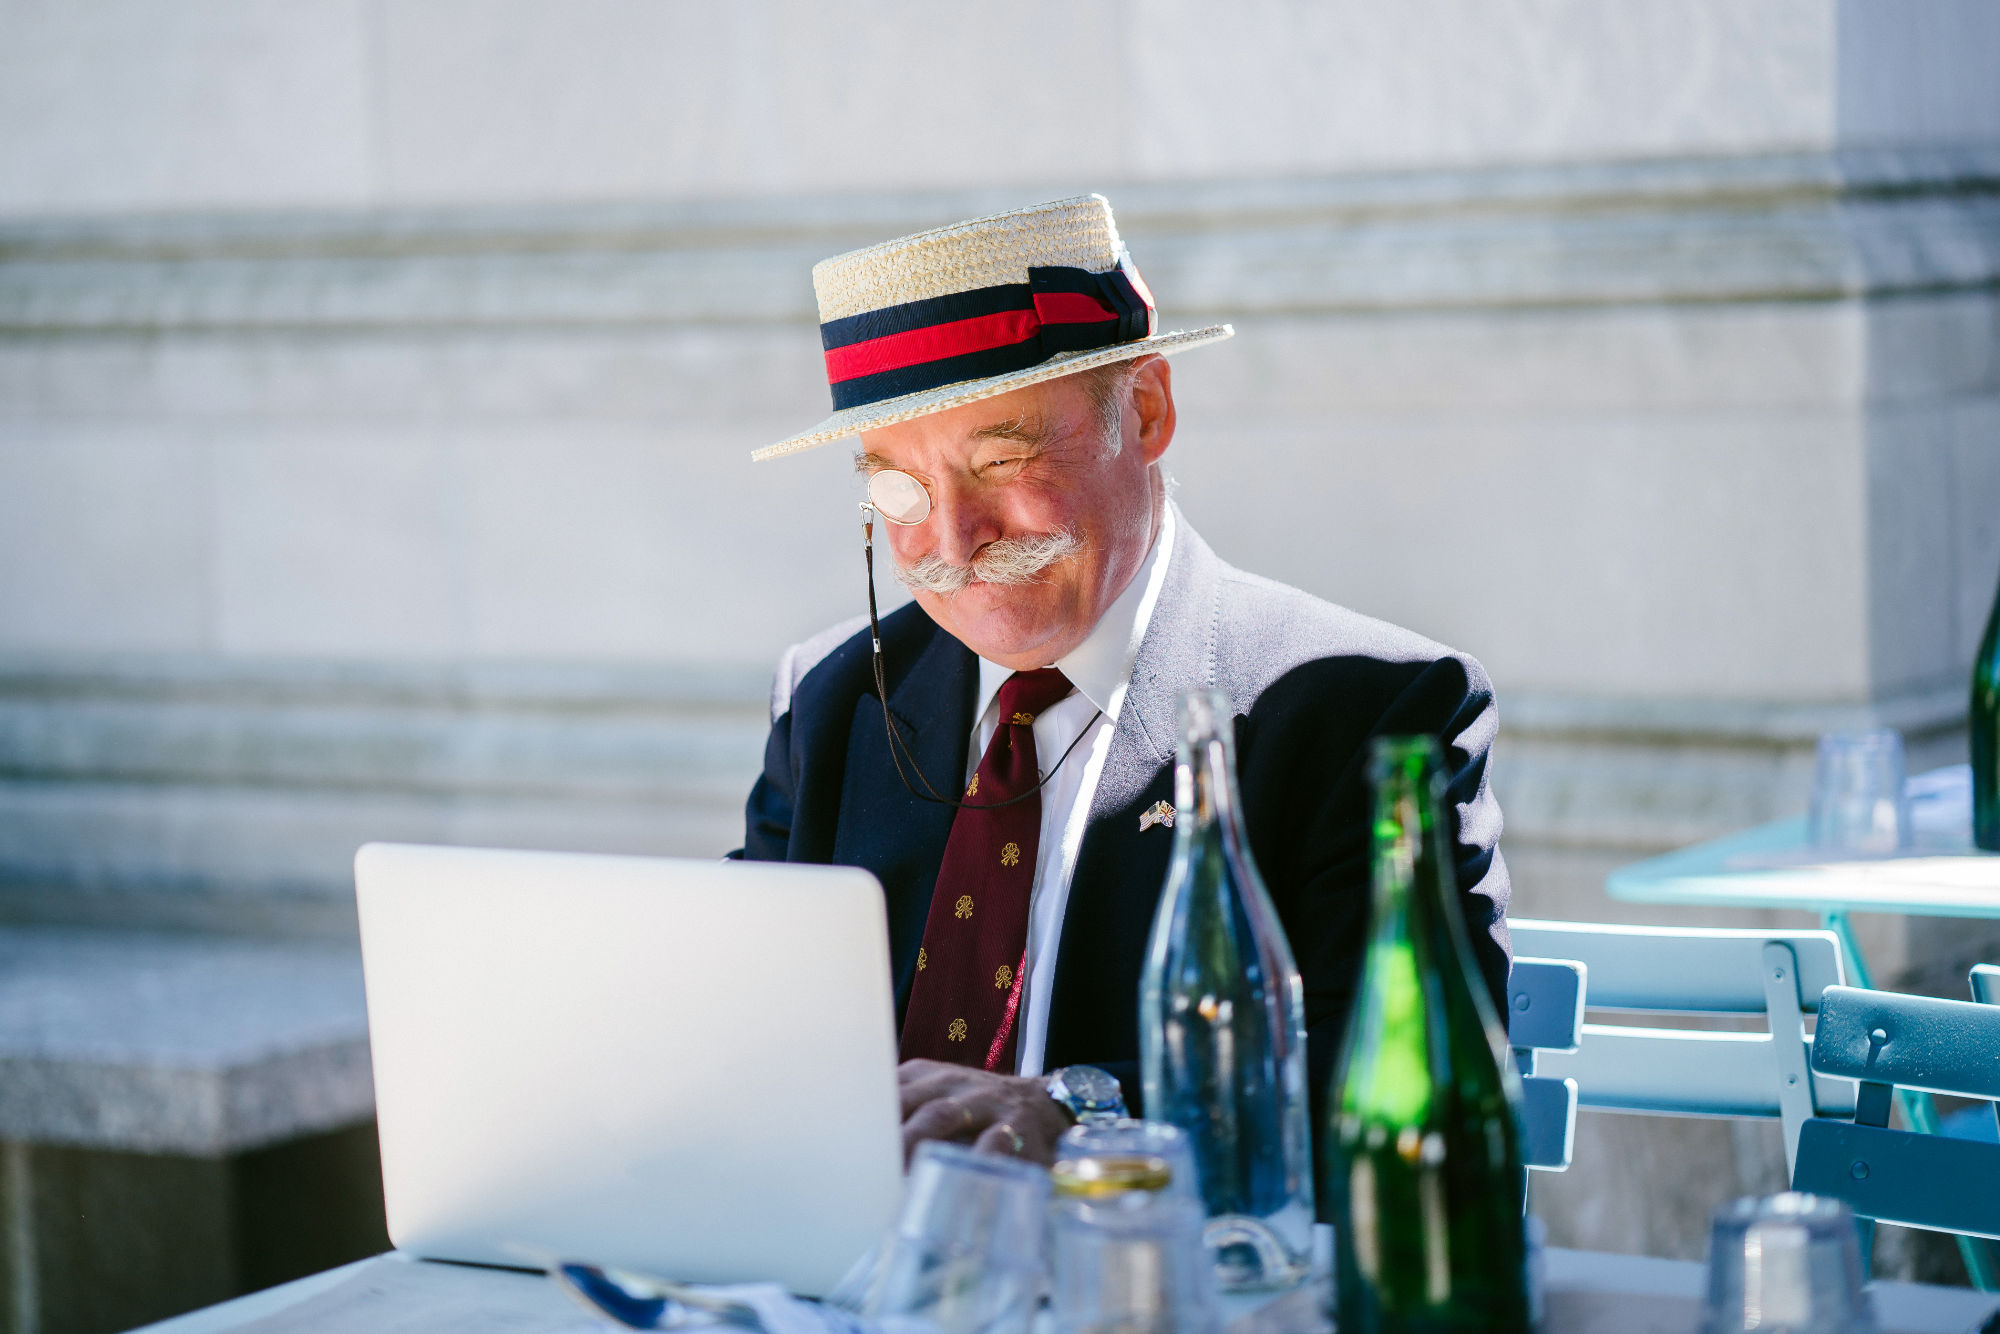 Fancy senior enjoying streaming services